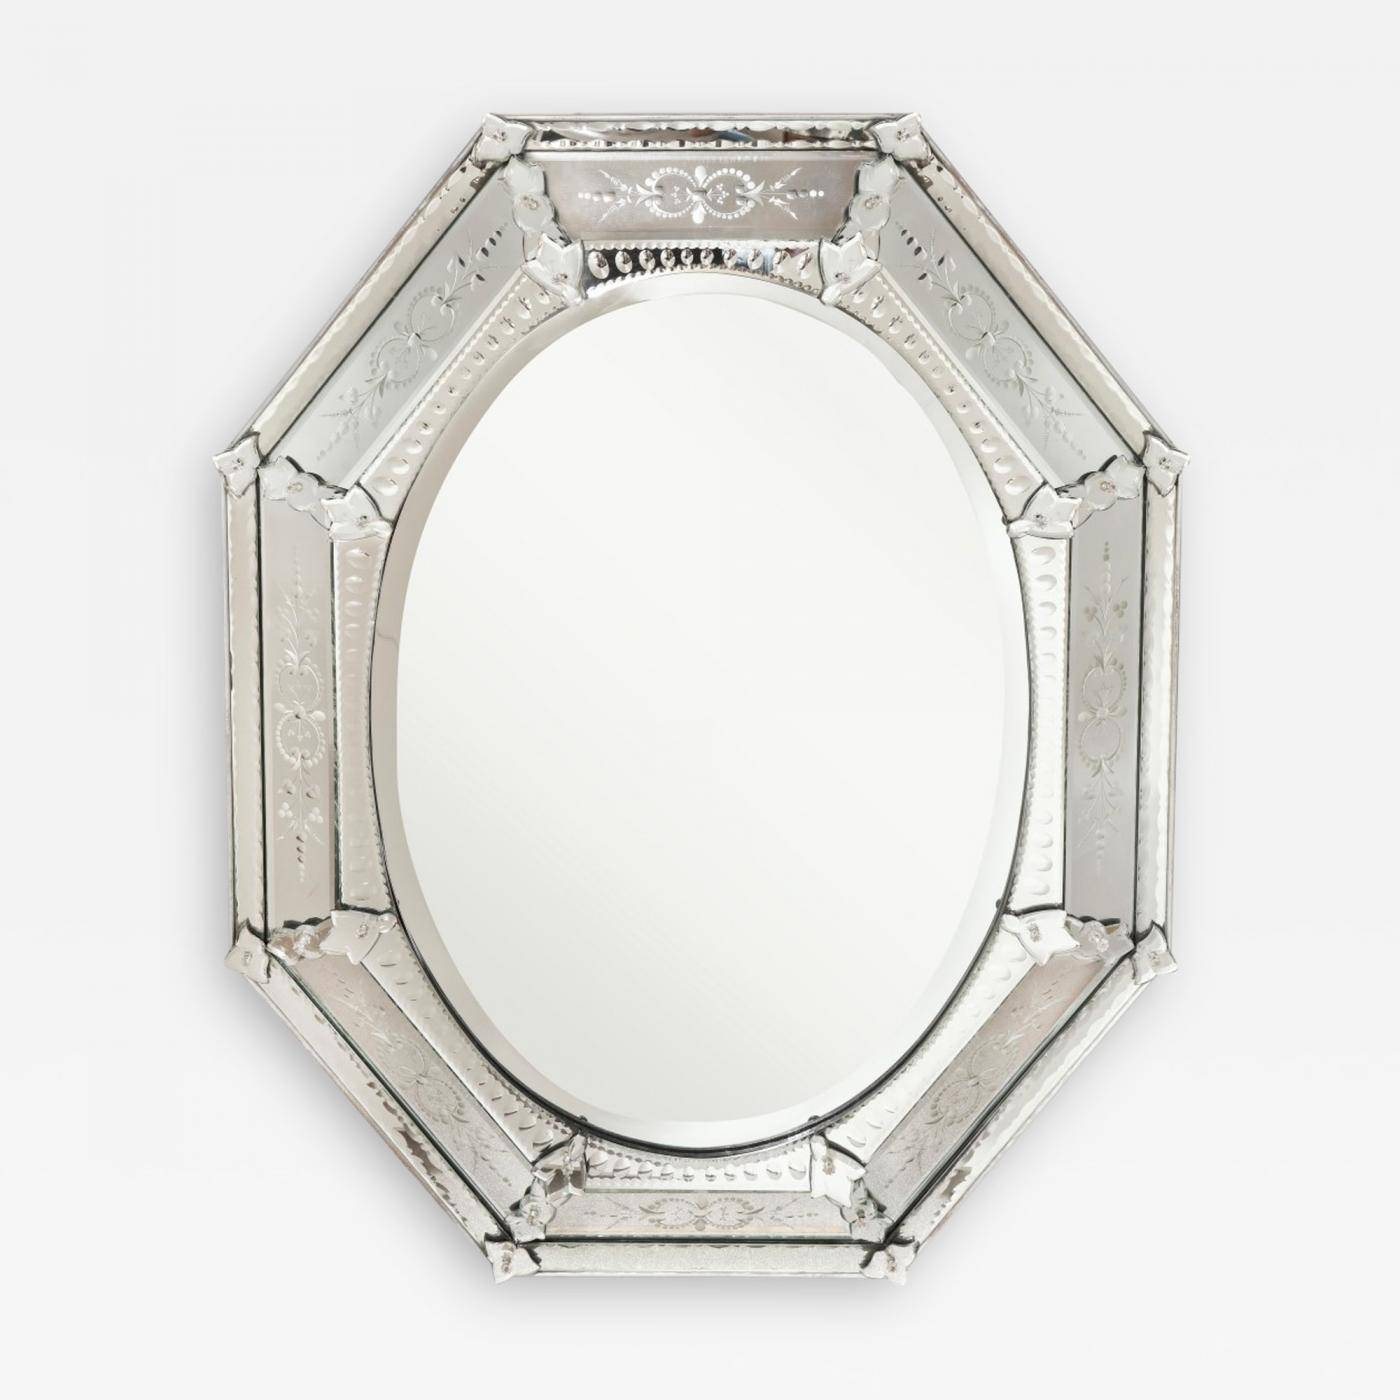 A Venetian Etched Glass Mirror pertaining to Venetian Etched Glass Mirrors (Image 2 of 15)